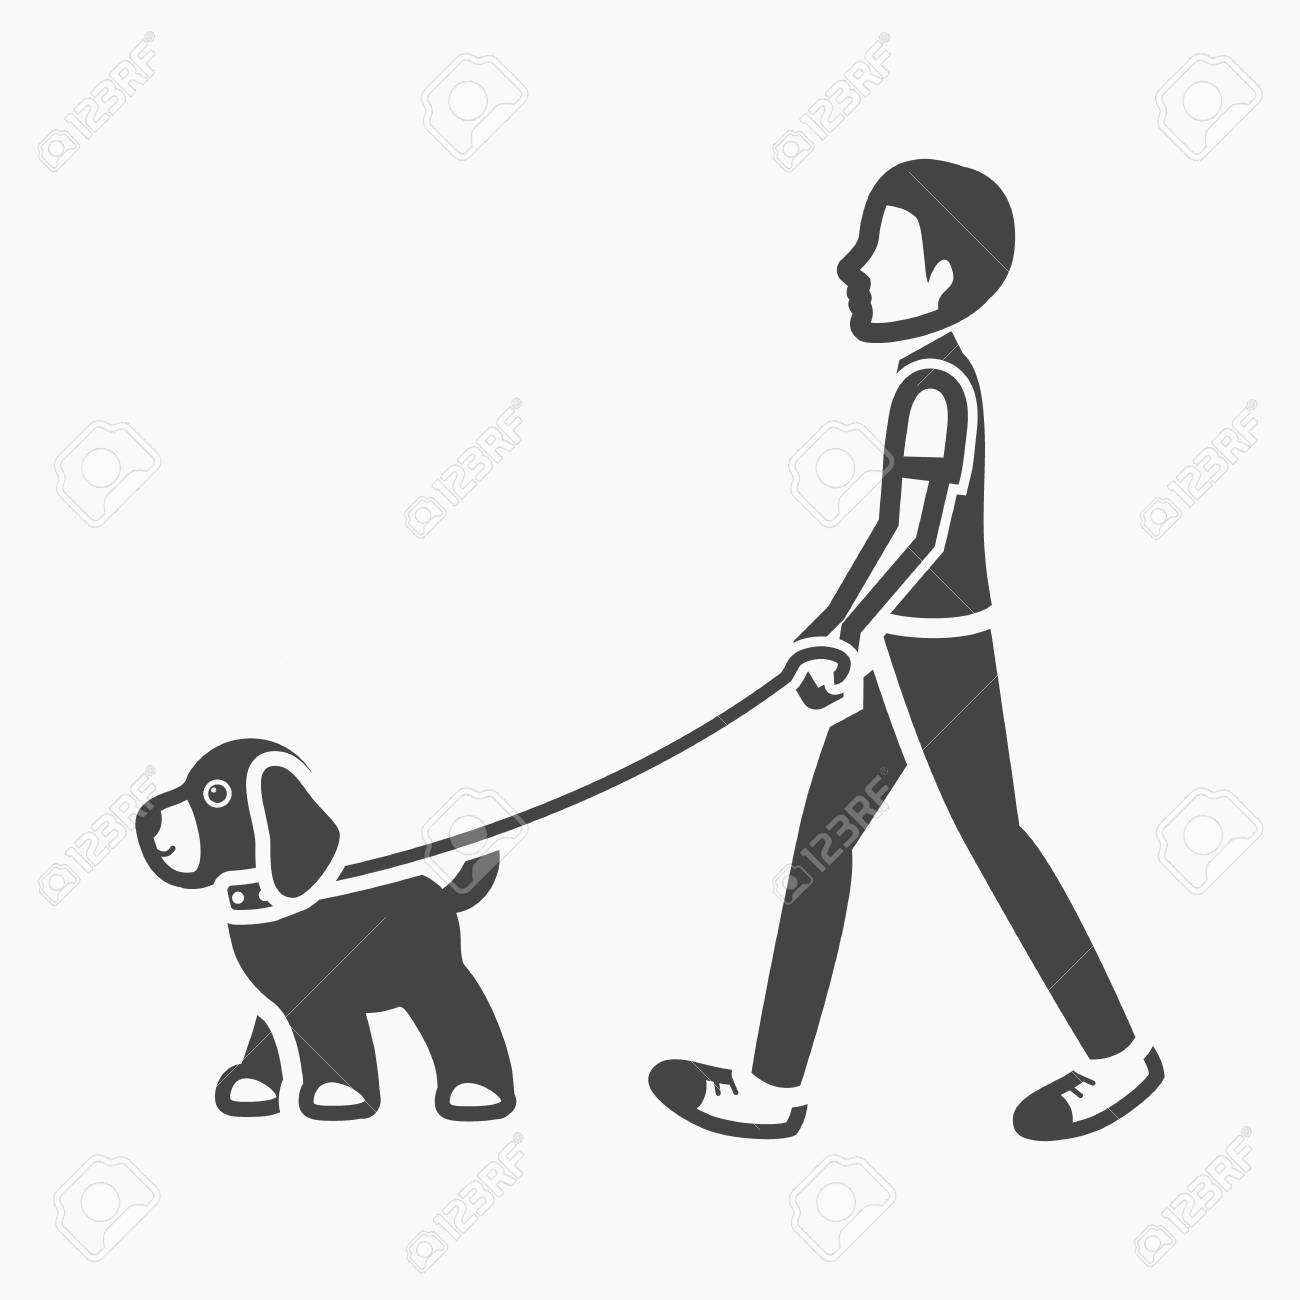 dog walk vector illustration icon in black design royalty free cliparts vectors and stock illustration image 61943555 dog walk vector illustration icon in black design